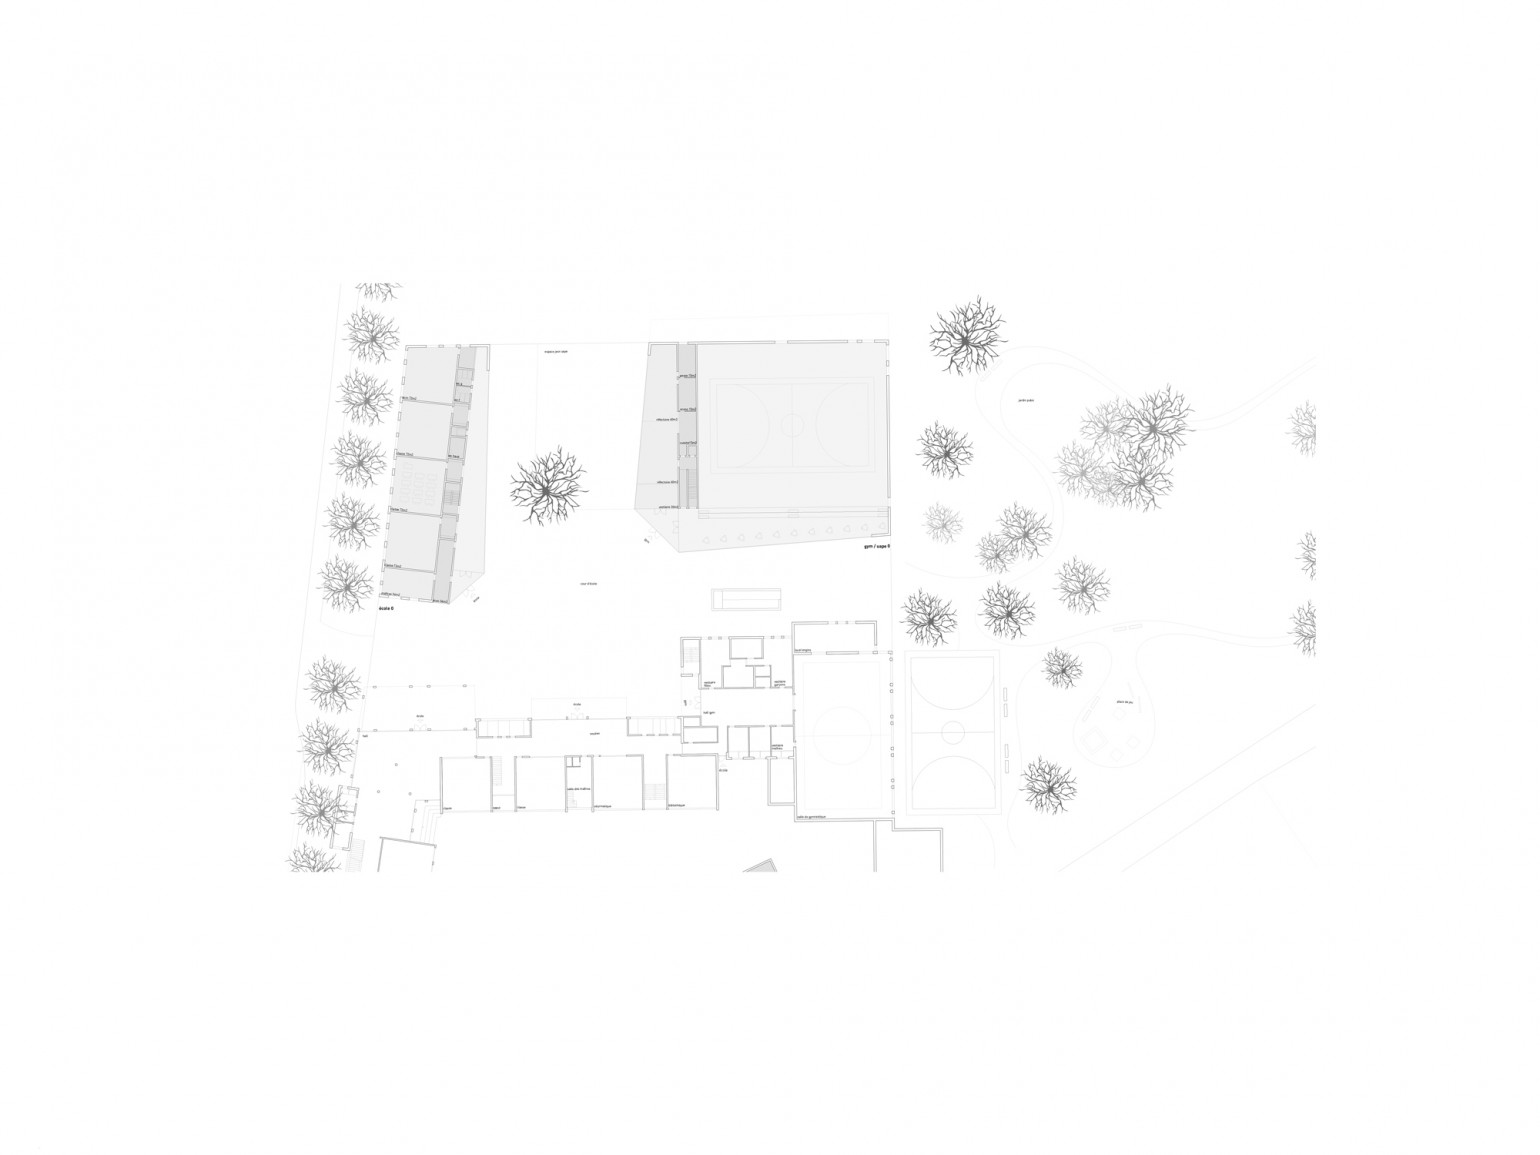 ecole_conthey_meyer_architecture_sion_04